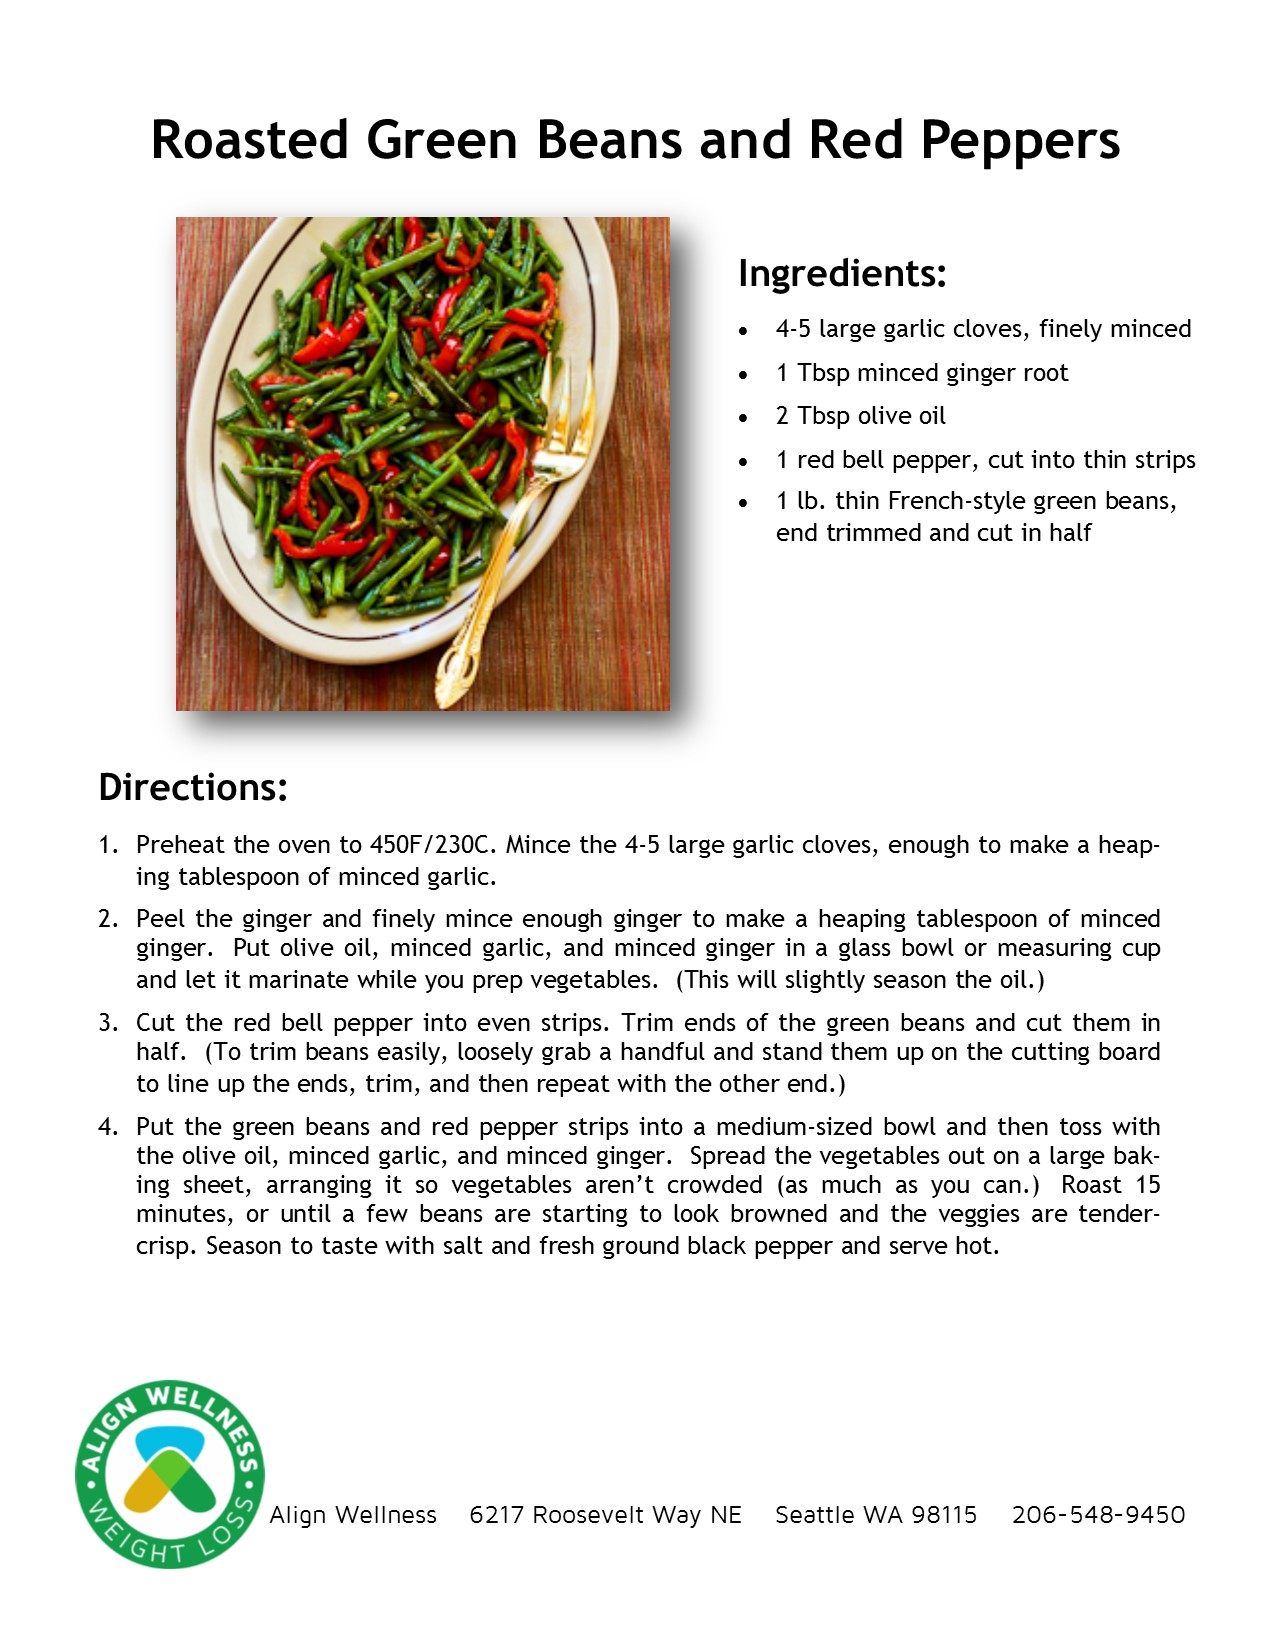 Roasted Green Beans and Red Peppers Ideal Protein Recipe